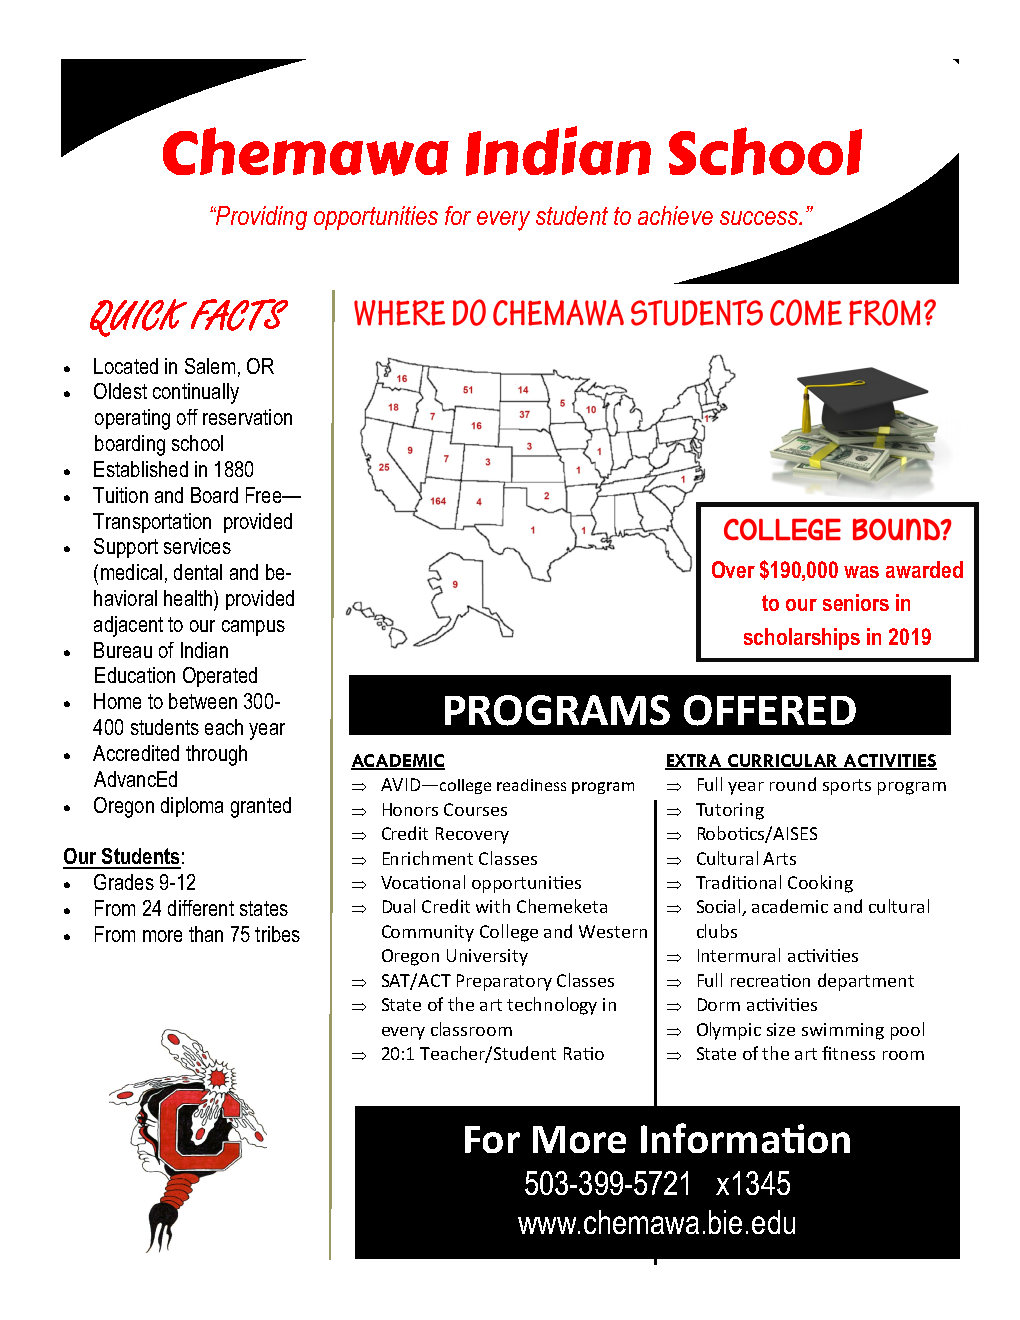 QuickFacts2019- Chemawa Indian School